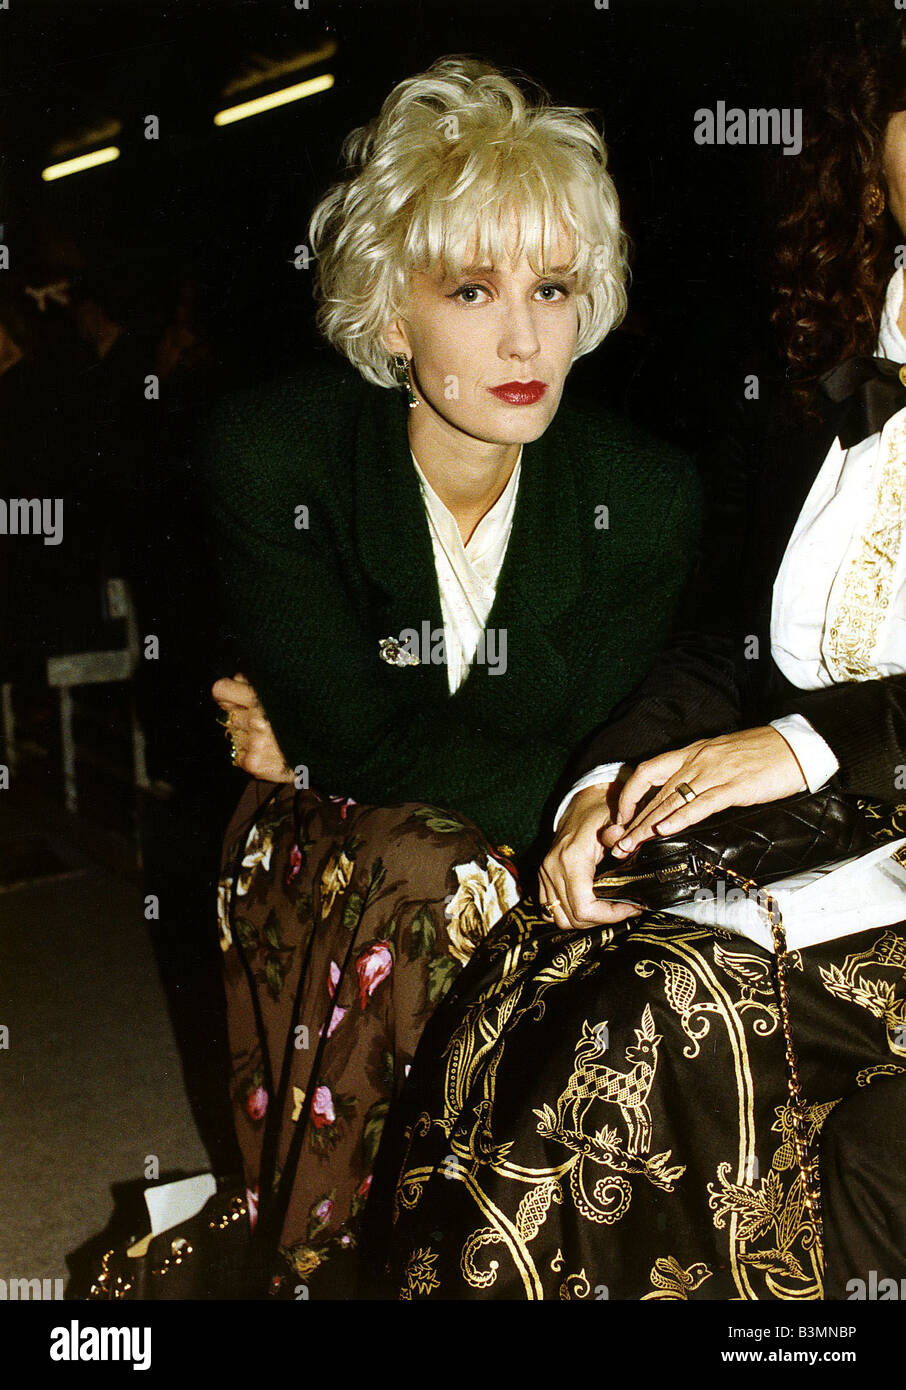 Paula Yates Stock Photos and Images